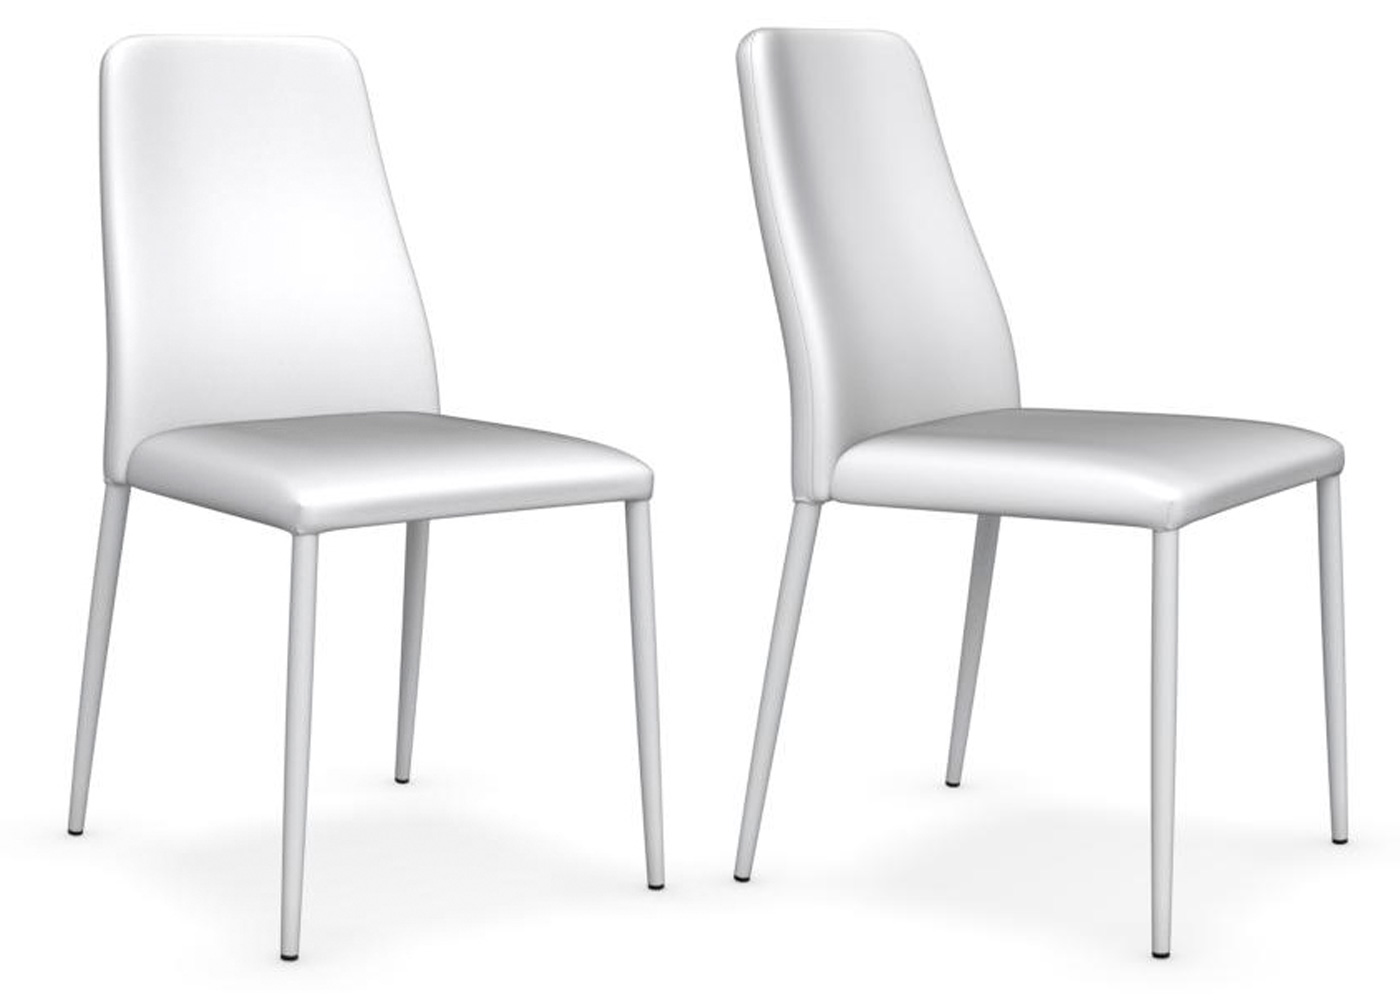 Set of 4 x Calligaris club chairs in white gummy faux